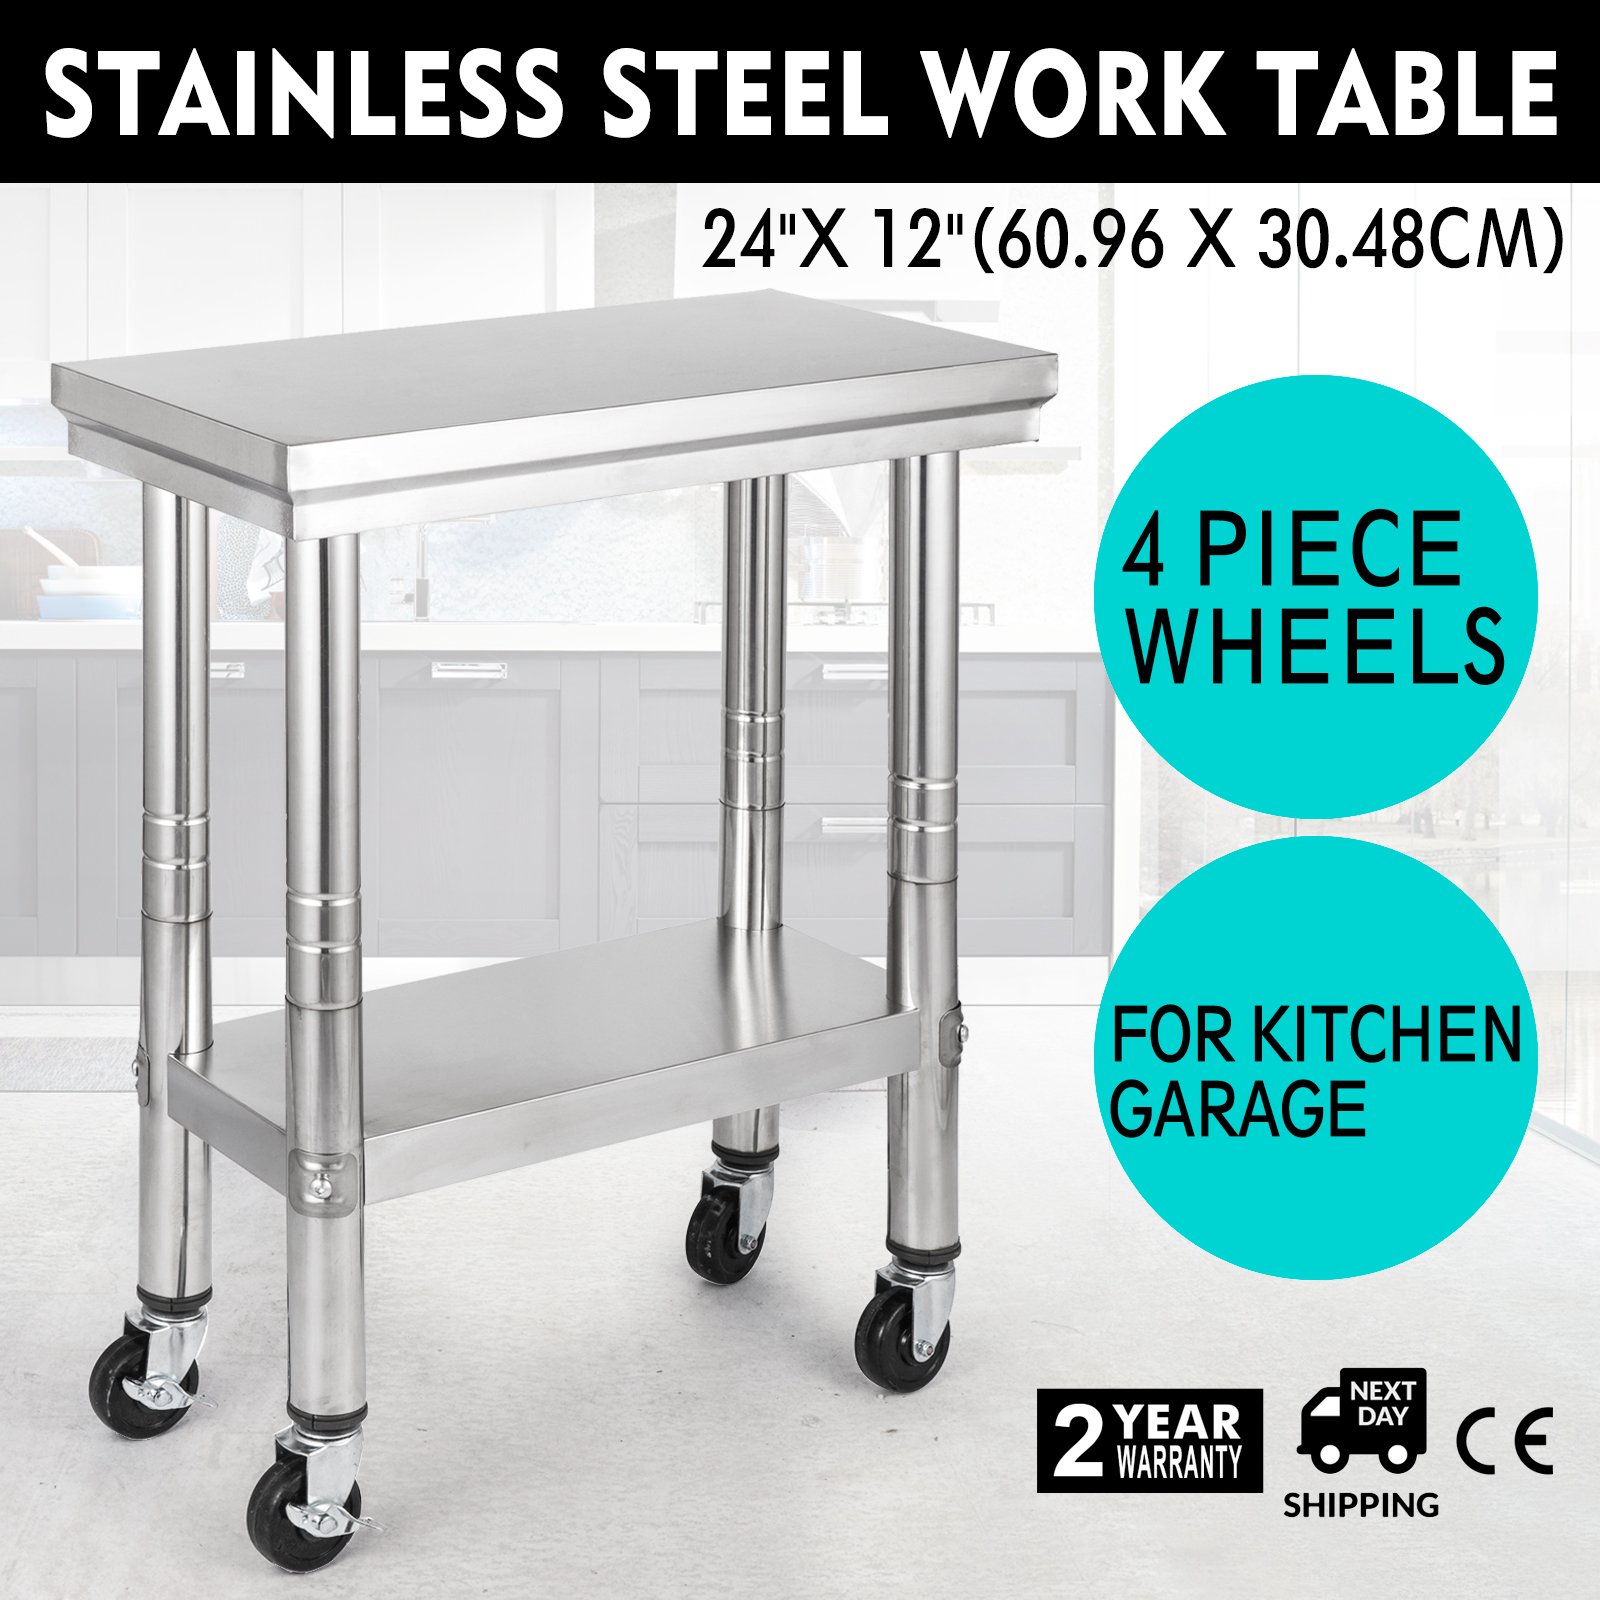 Details About 24x12 Kitchen Stainless Steel Work Table With 4 Caster Wheels Adjule Height